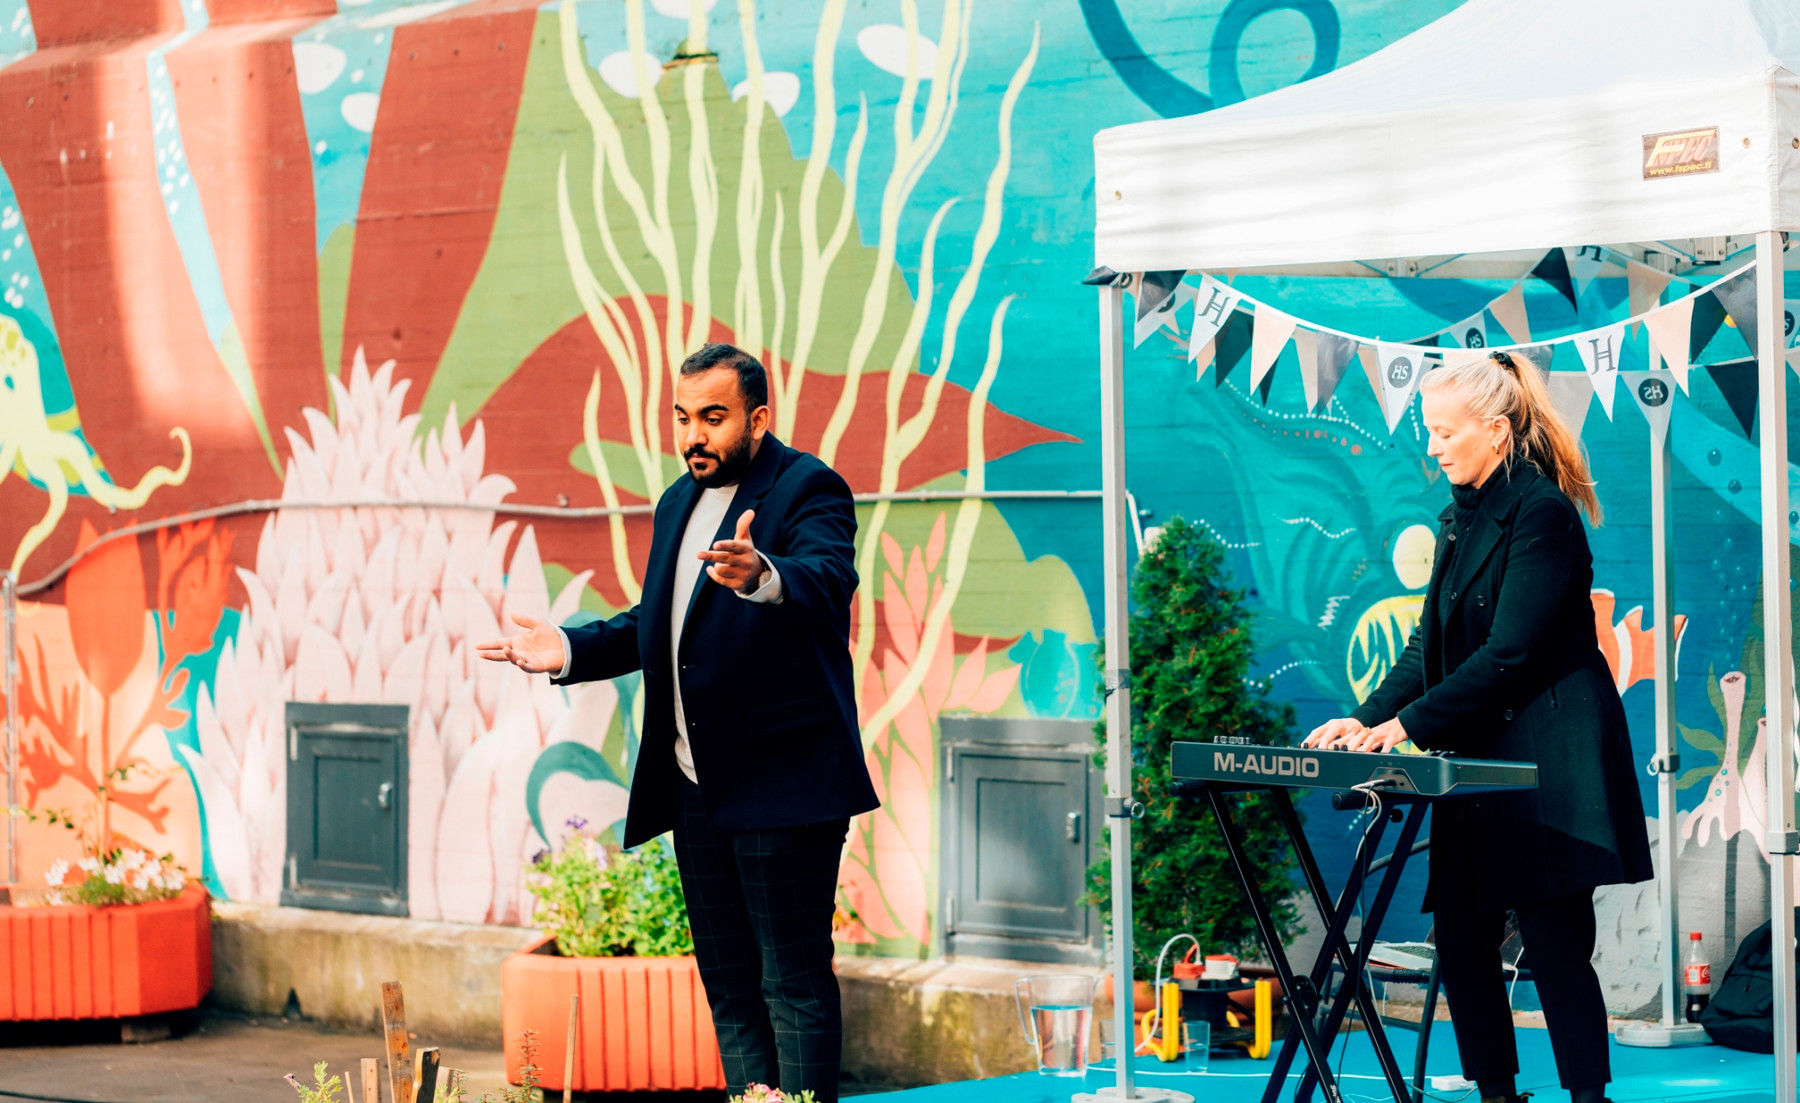 A man sings and a woman plays keyboards outdoors in front a colourfully painted wall.